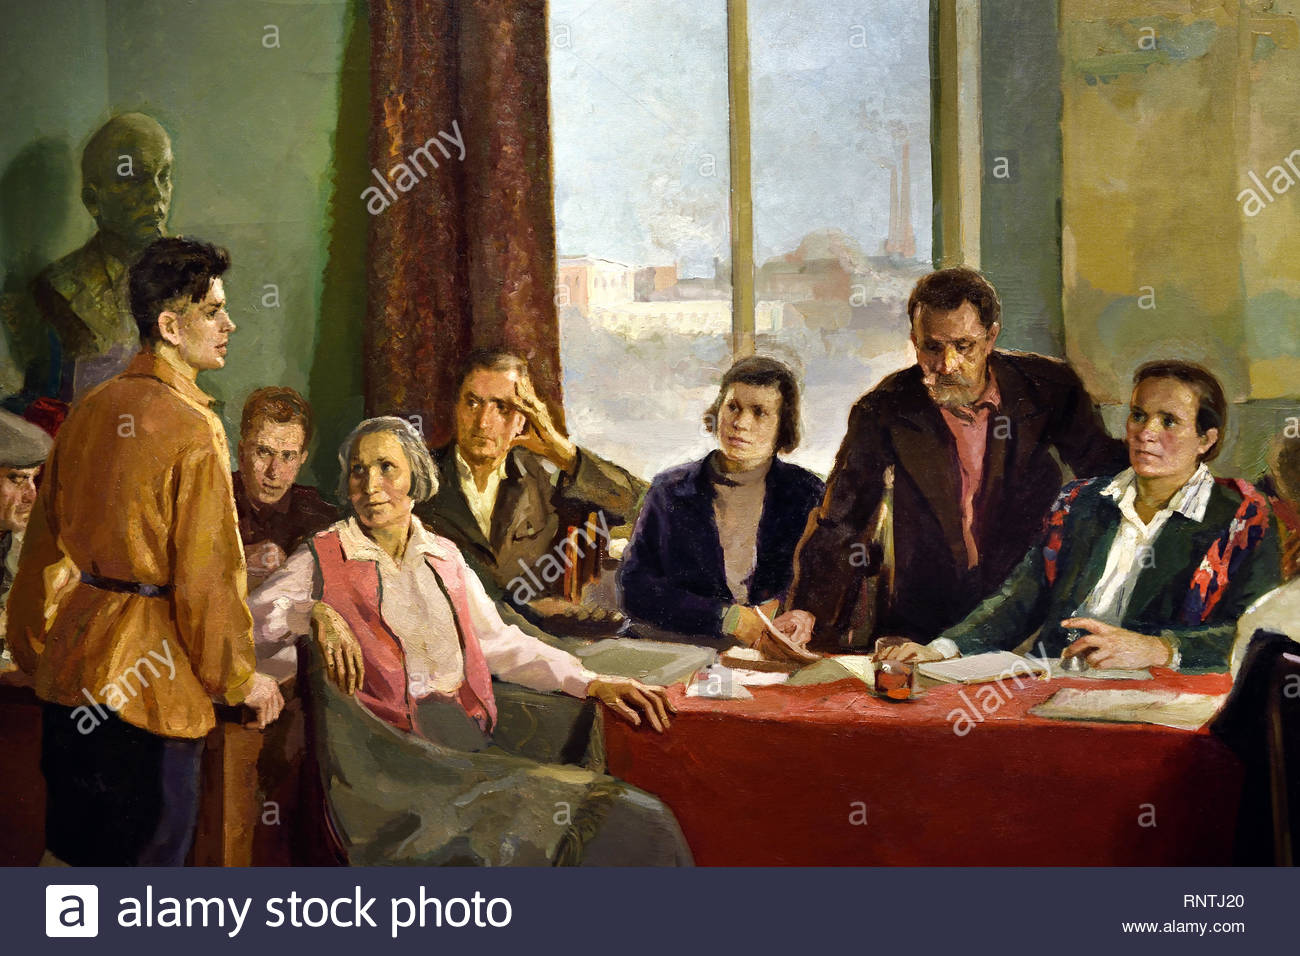 Meeting of a Factory Party Committee 1937 Ilya Lukomsky Soviet Union Communist Propaganda (Russia under Lenin and Stalin1921-1953 ). - Stock Image